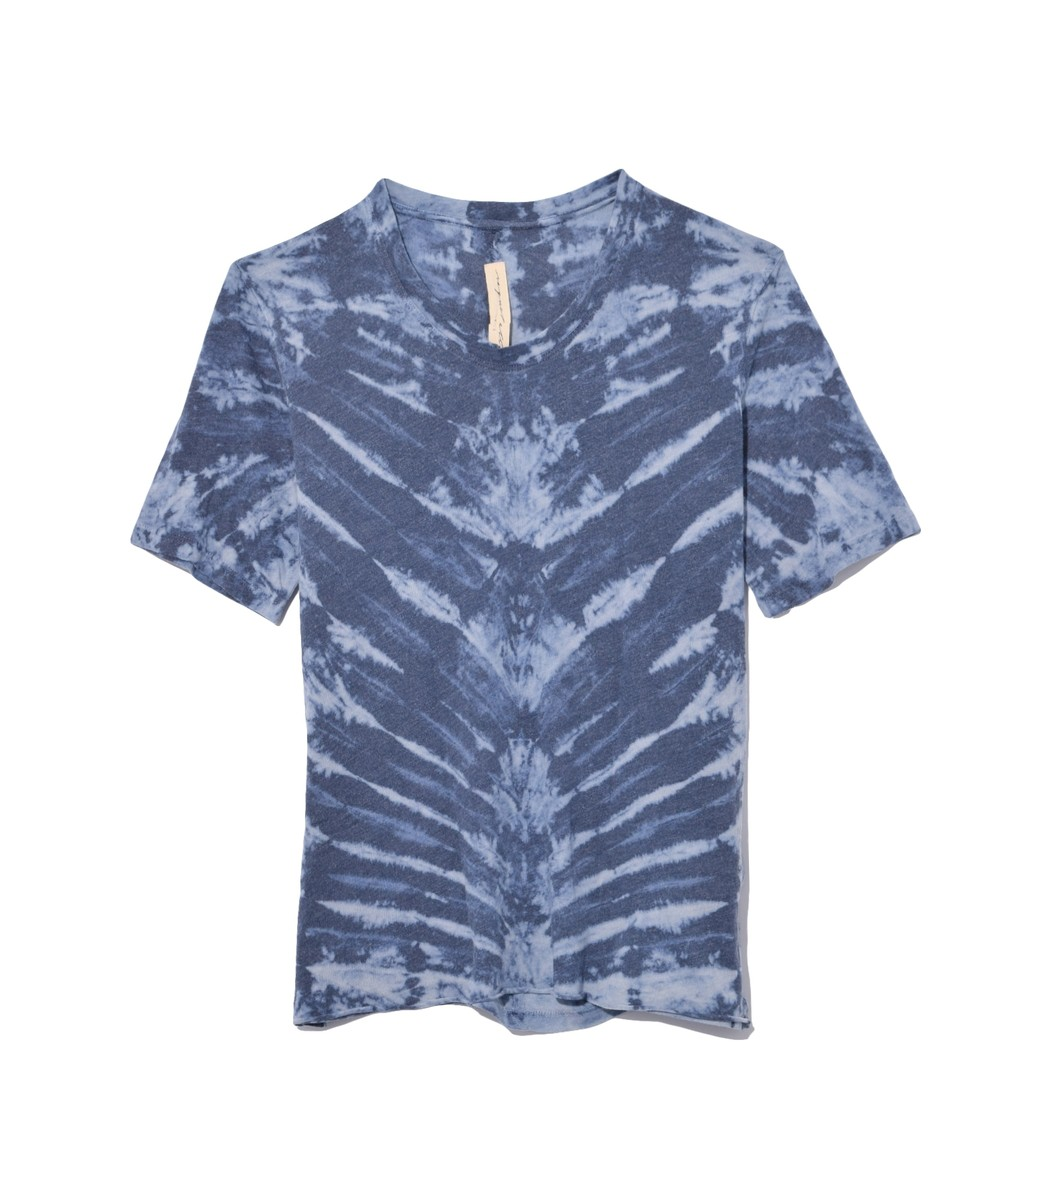 Raquel Allegra Tops Boyfriend Tee in Water Tie Dye